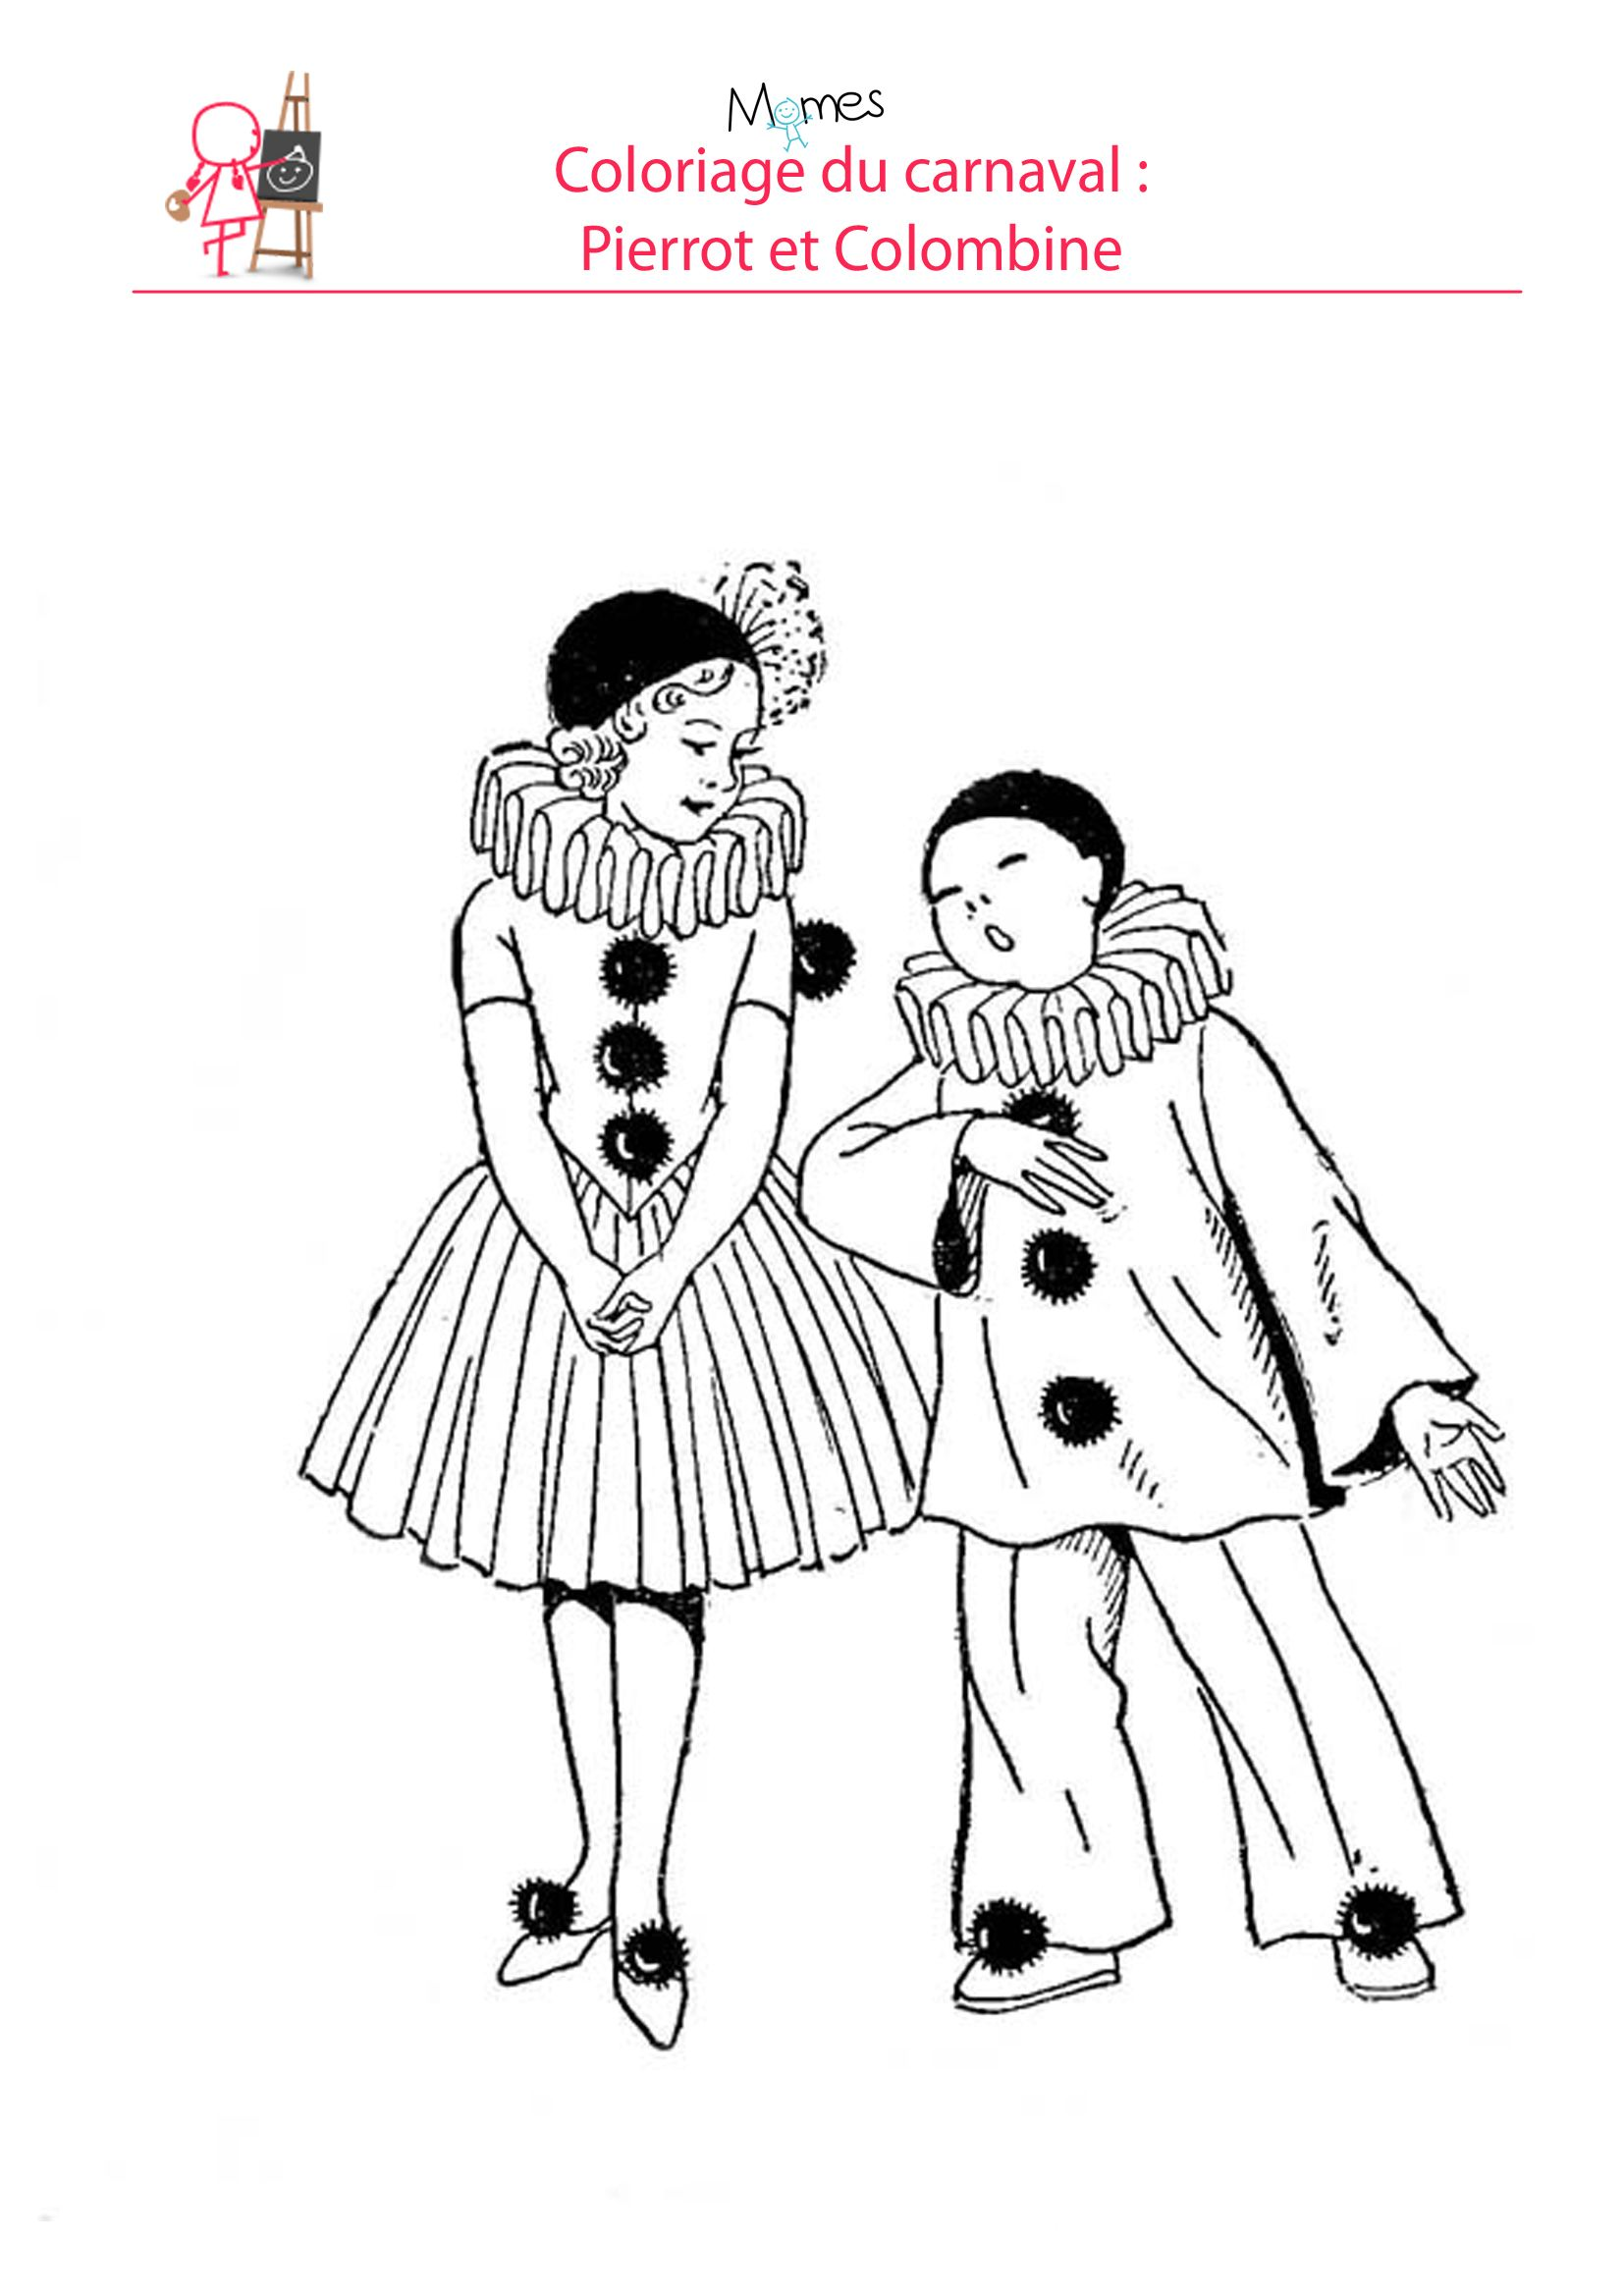 Coloriage Carnaval Deguisements.Coloriage Pierrot Et Colombine Carnaval Drawings Sewing Toys Et